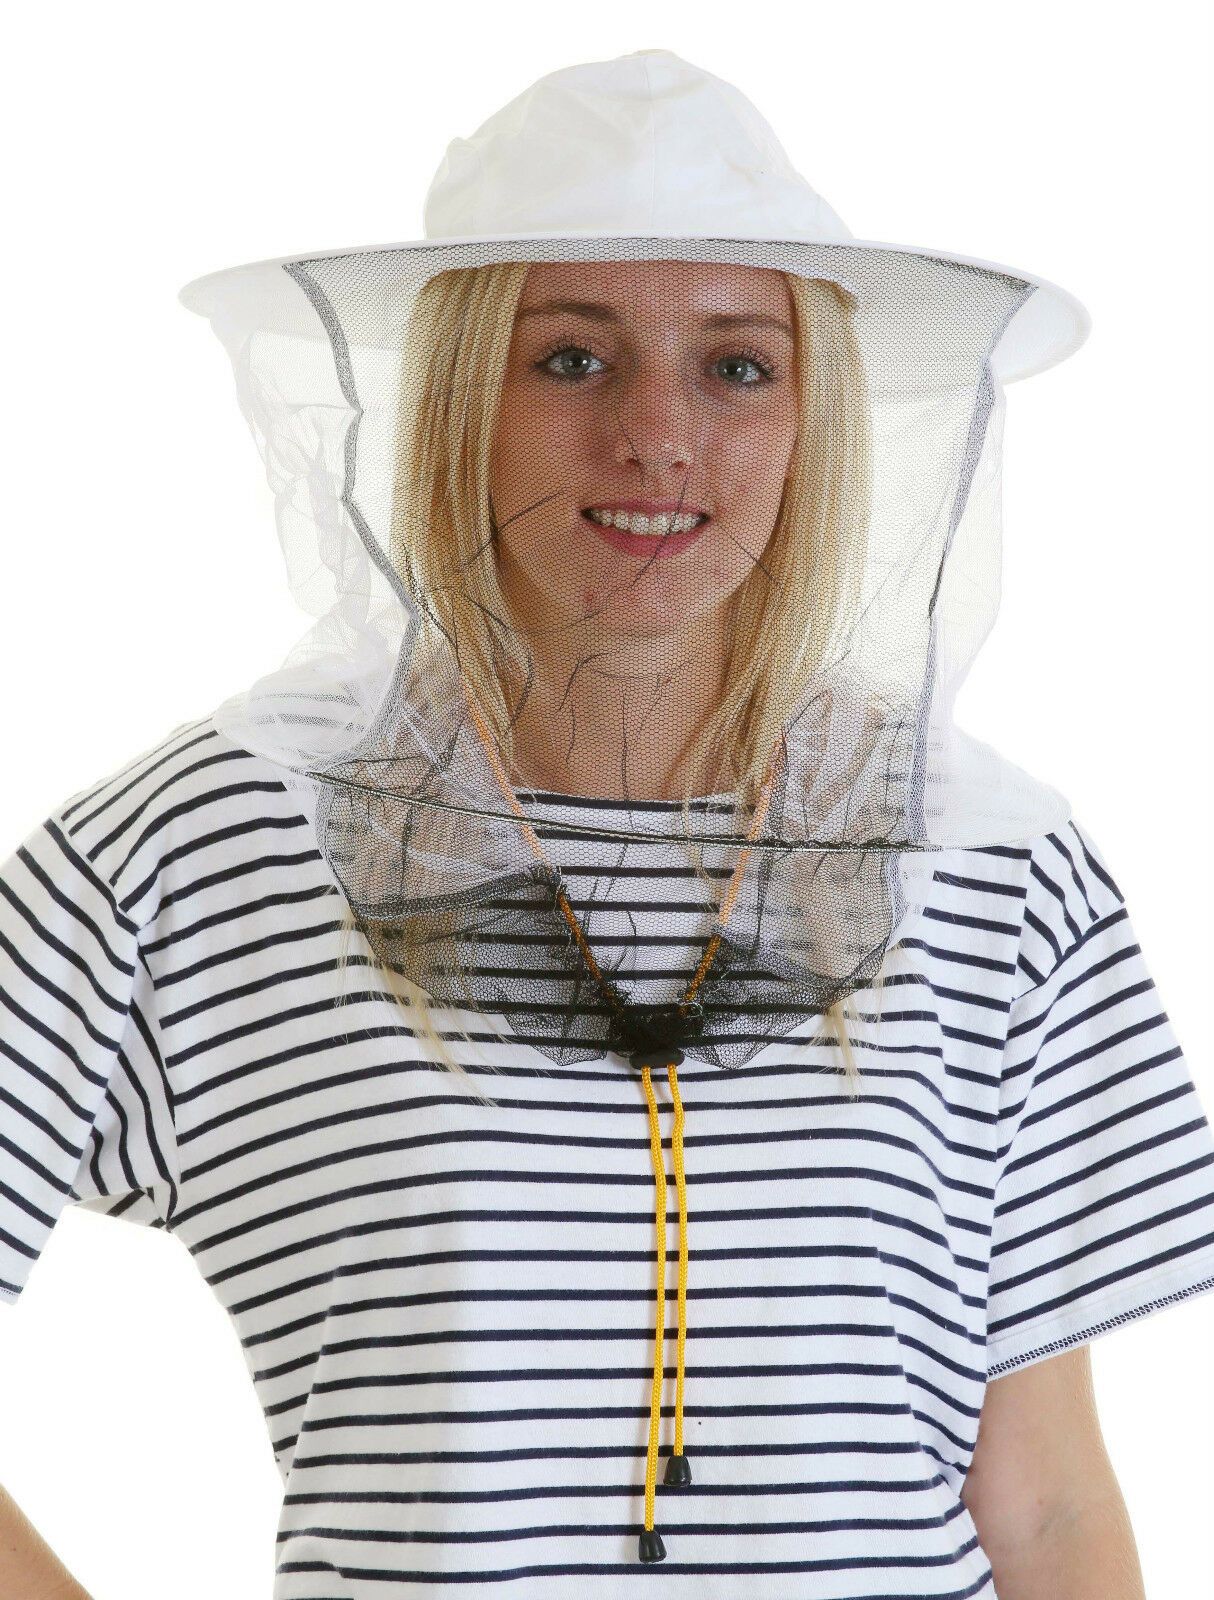 5 x Beekeeping White cotton bee hat and Veils TOGGLE